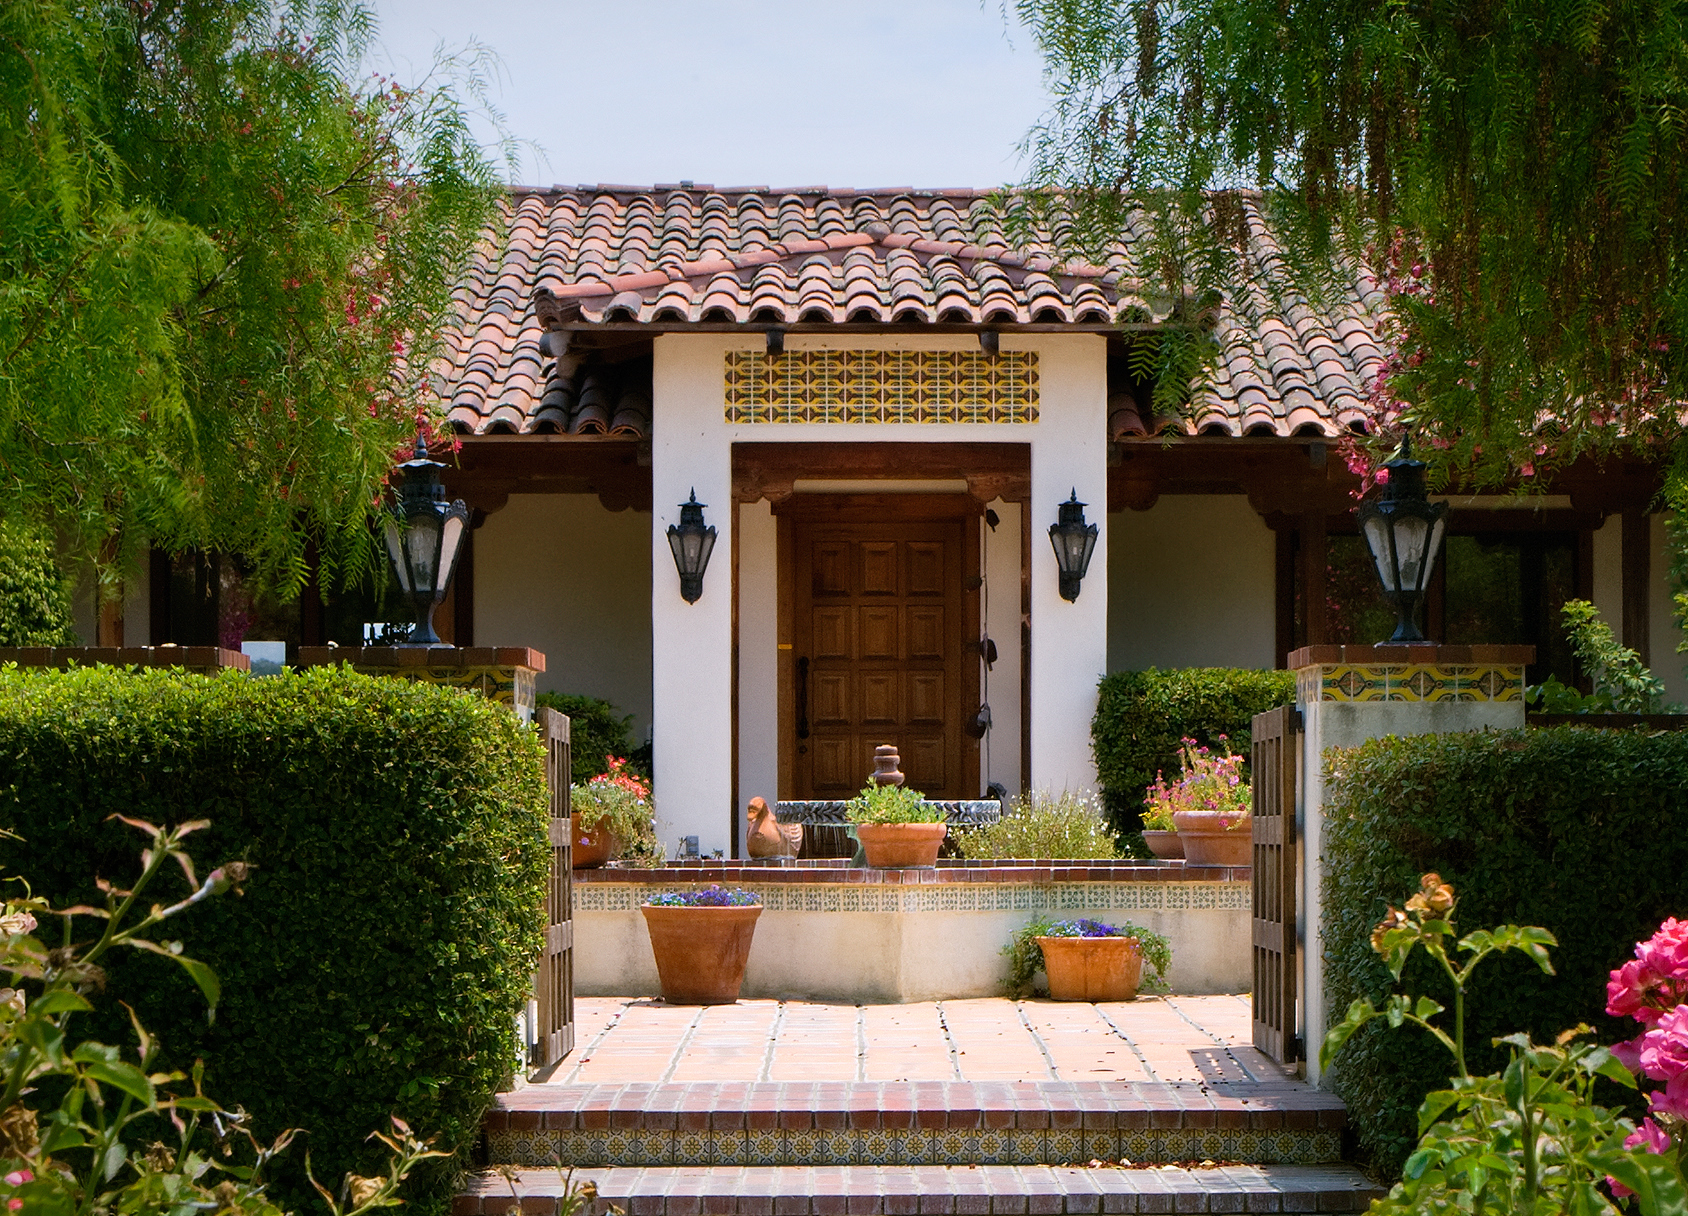 The Casitas of Arroyo Grande